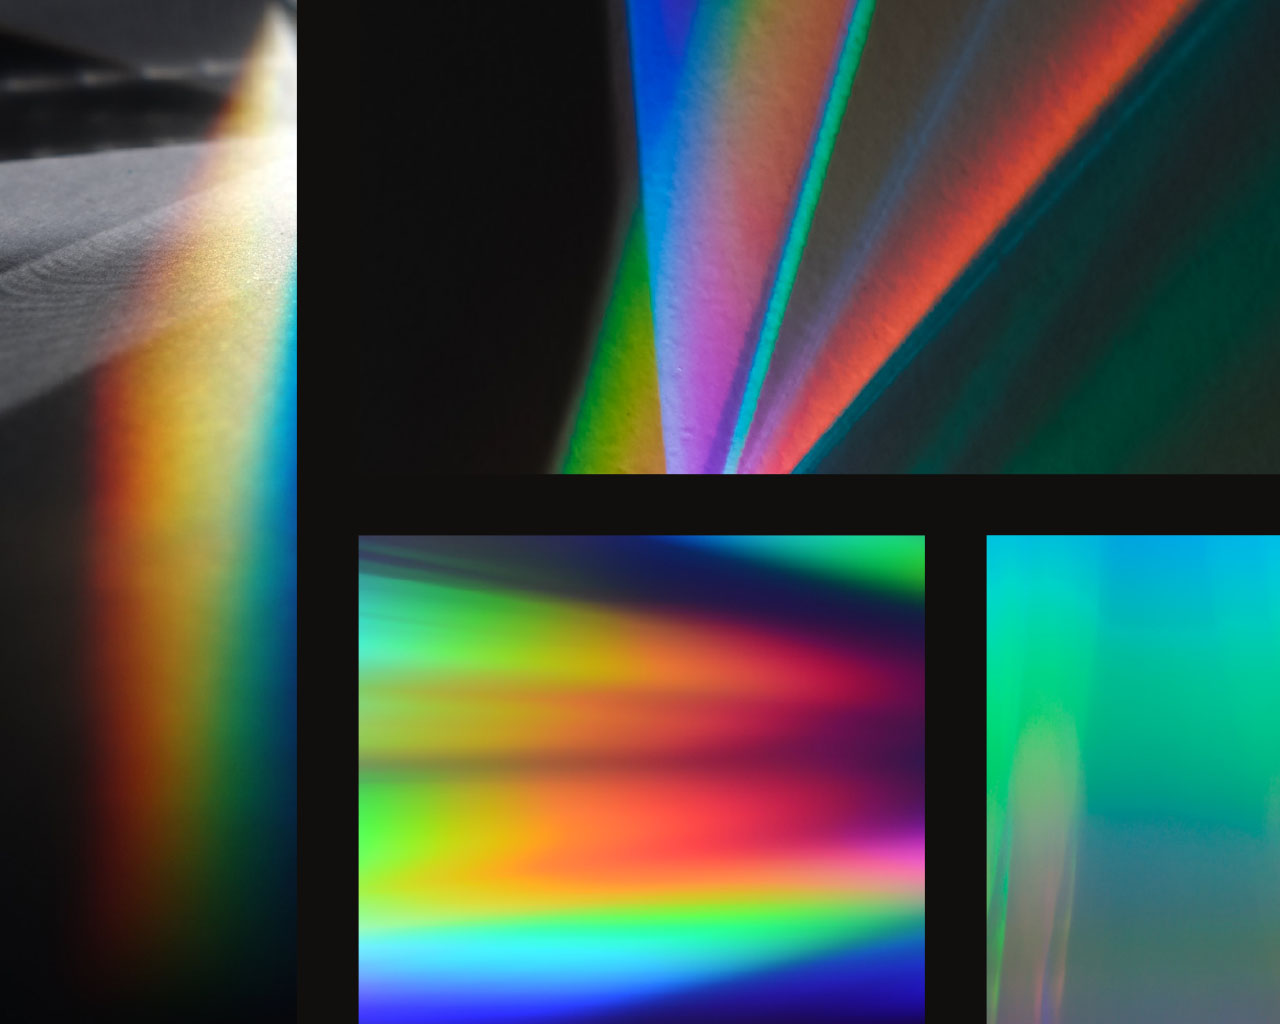 Grid of colorful light spectrum textures for the SHIFT brand